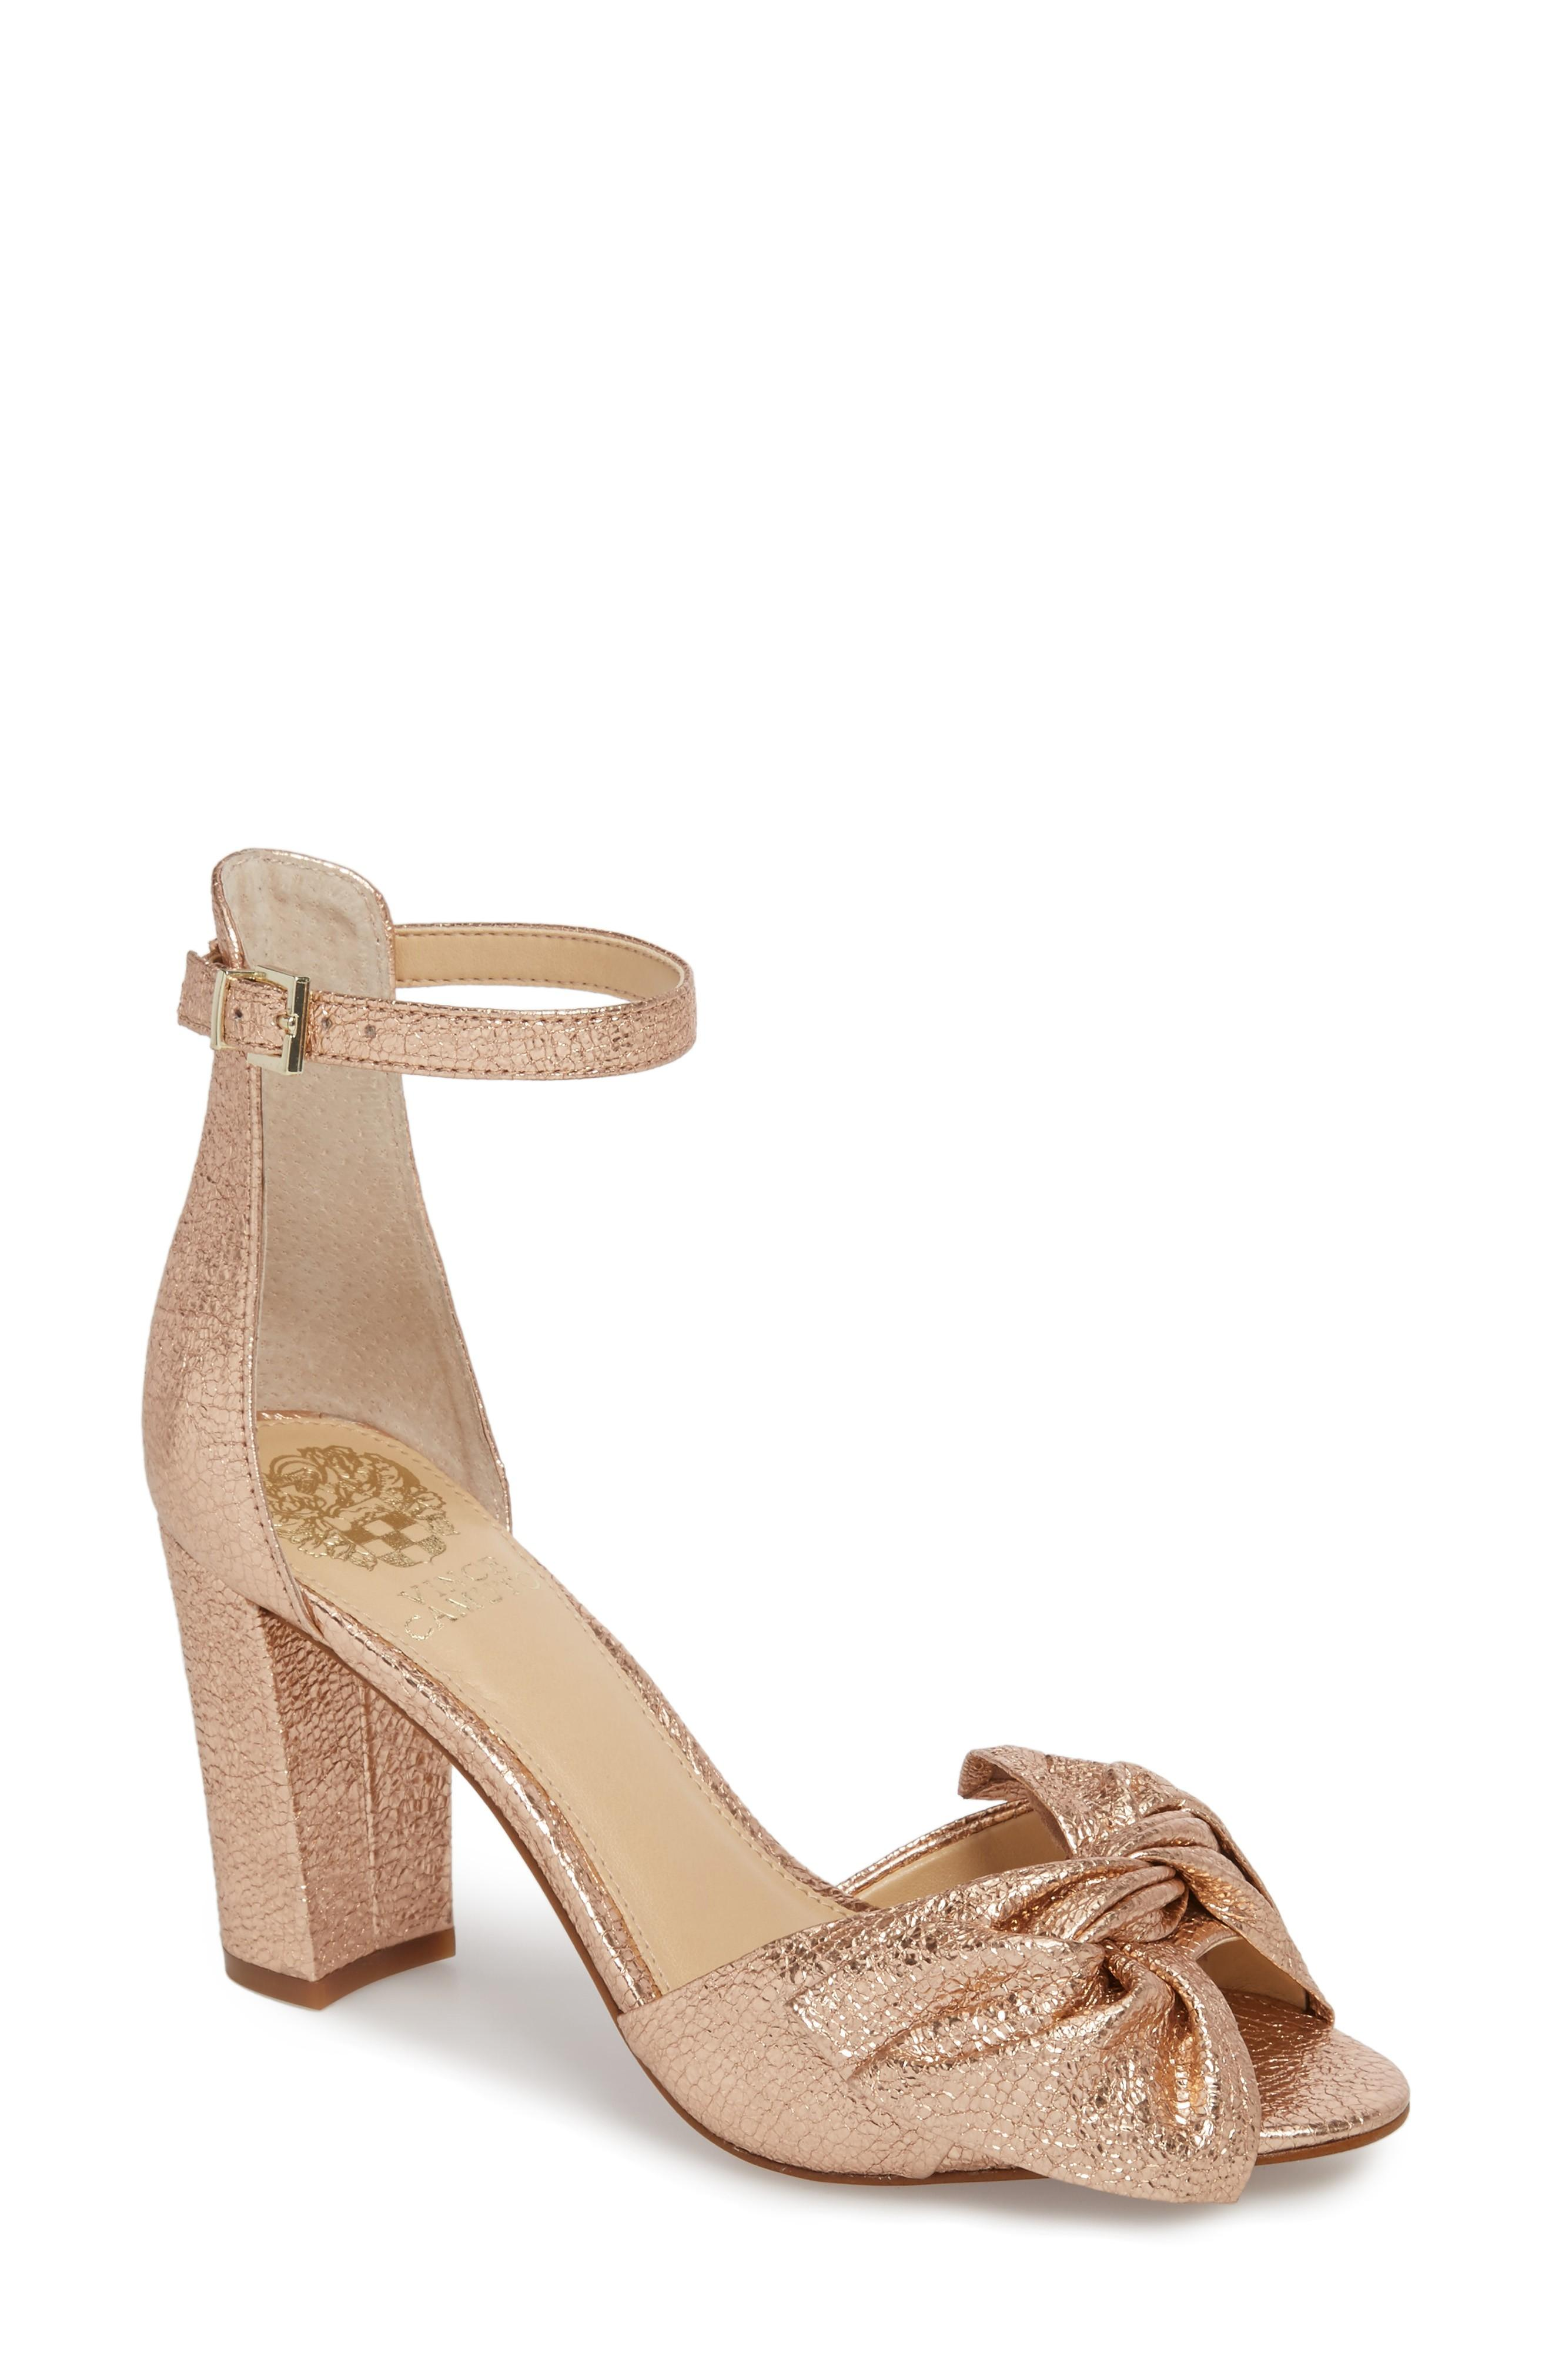 0237b04146f A knotted bow adds soft dimension to an otherwise minimalist strappy sandal  lofted by a wrapped block heel. Style Name  Vince Camuto Carrelen Block Heel  ...